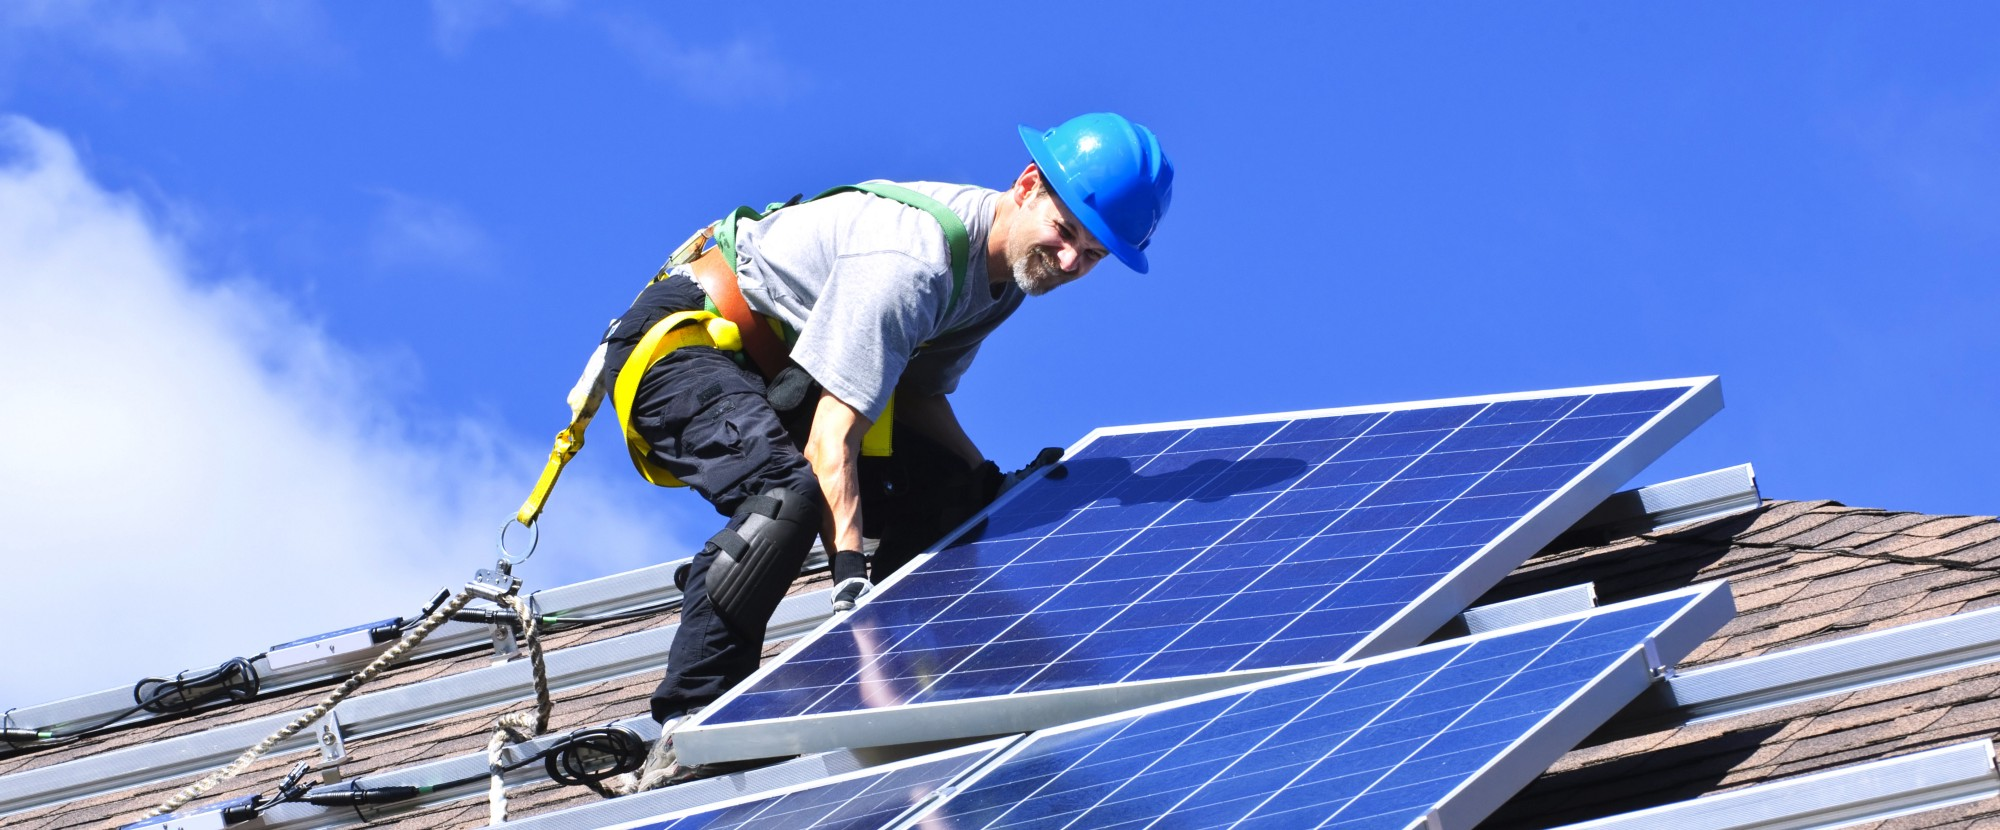 Americans are now twice as likely to work in solar as in coal